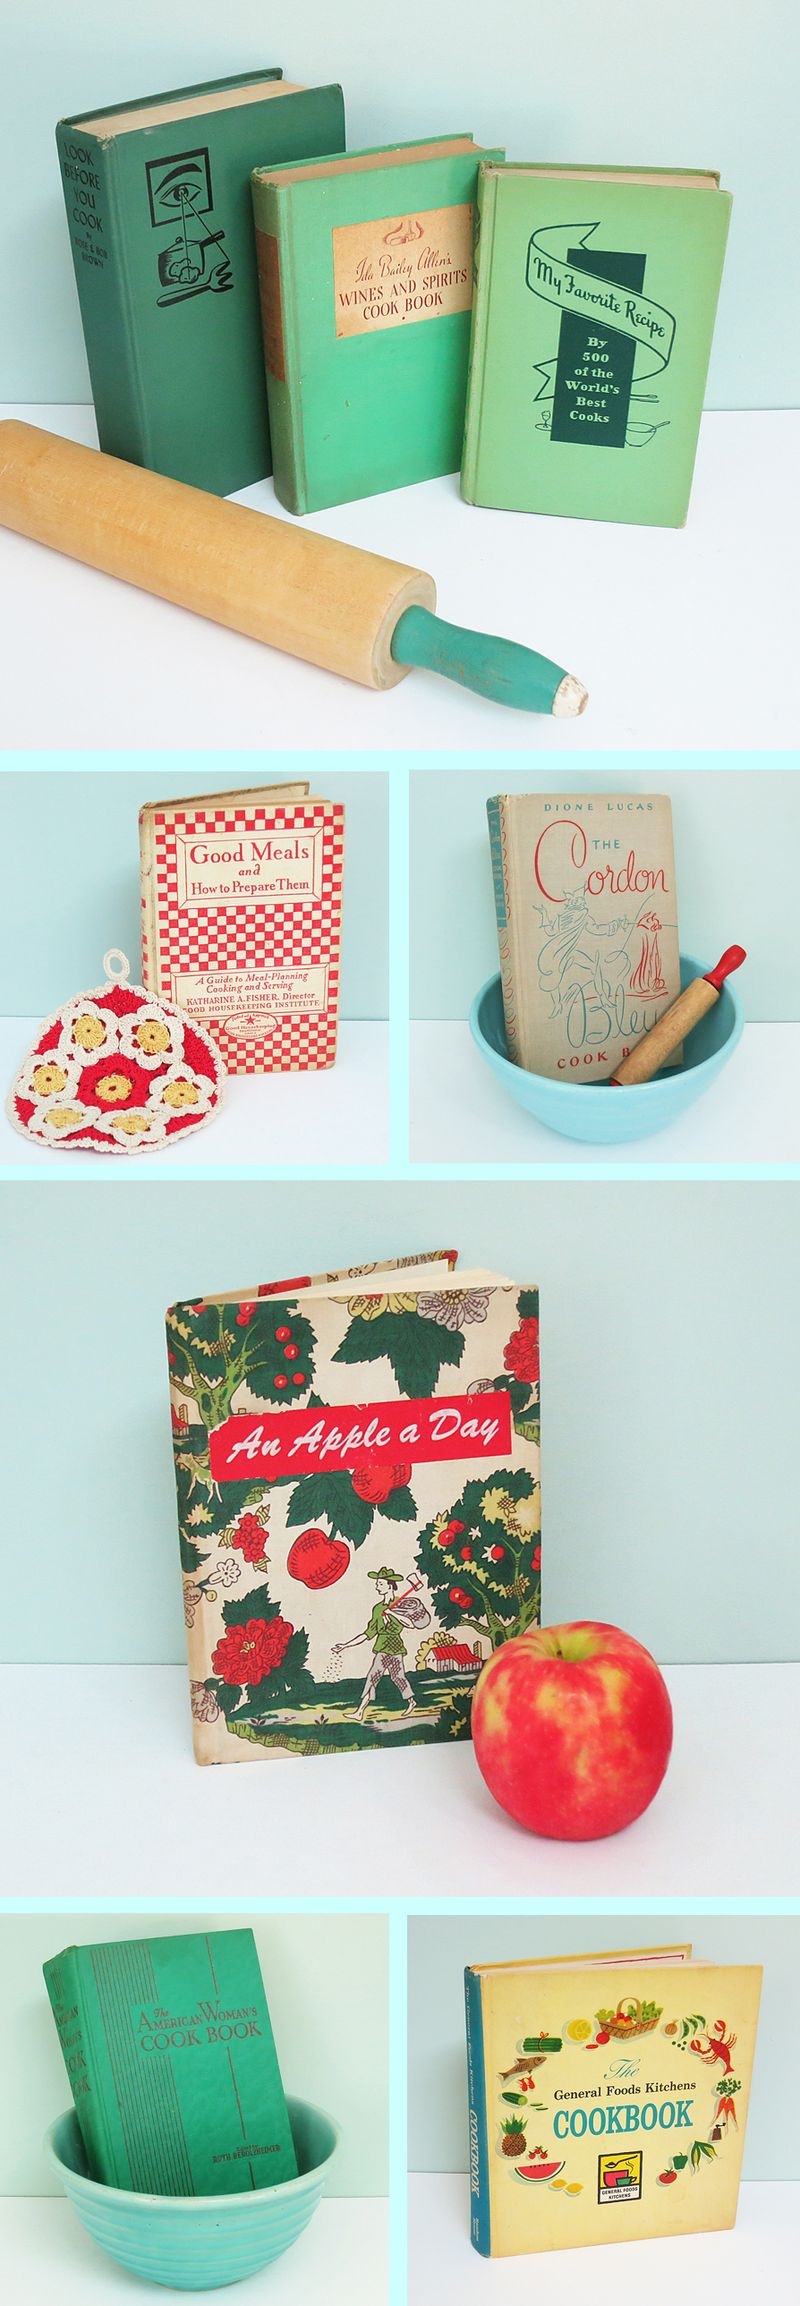 8 Vintage Cook Books